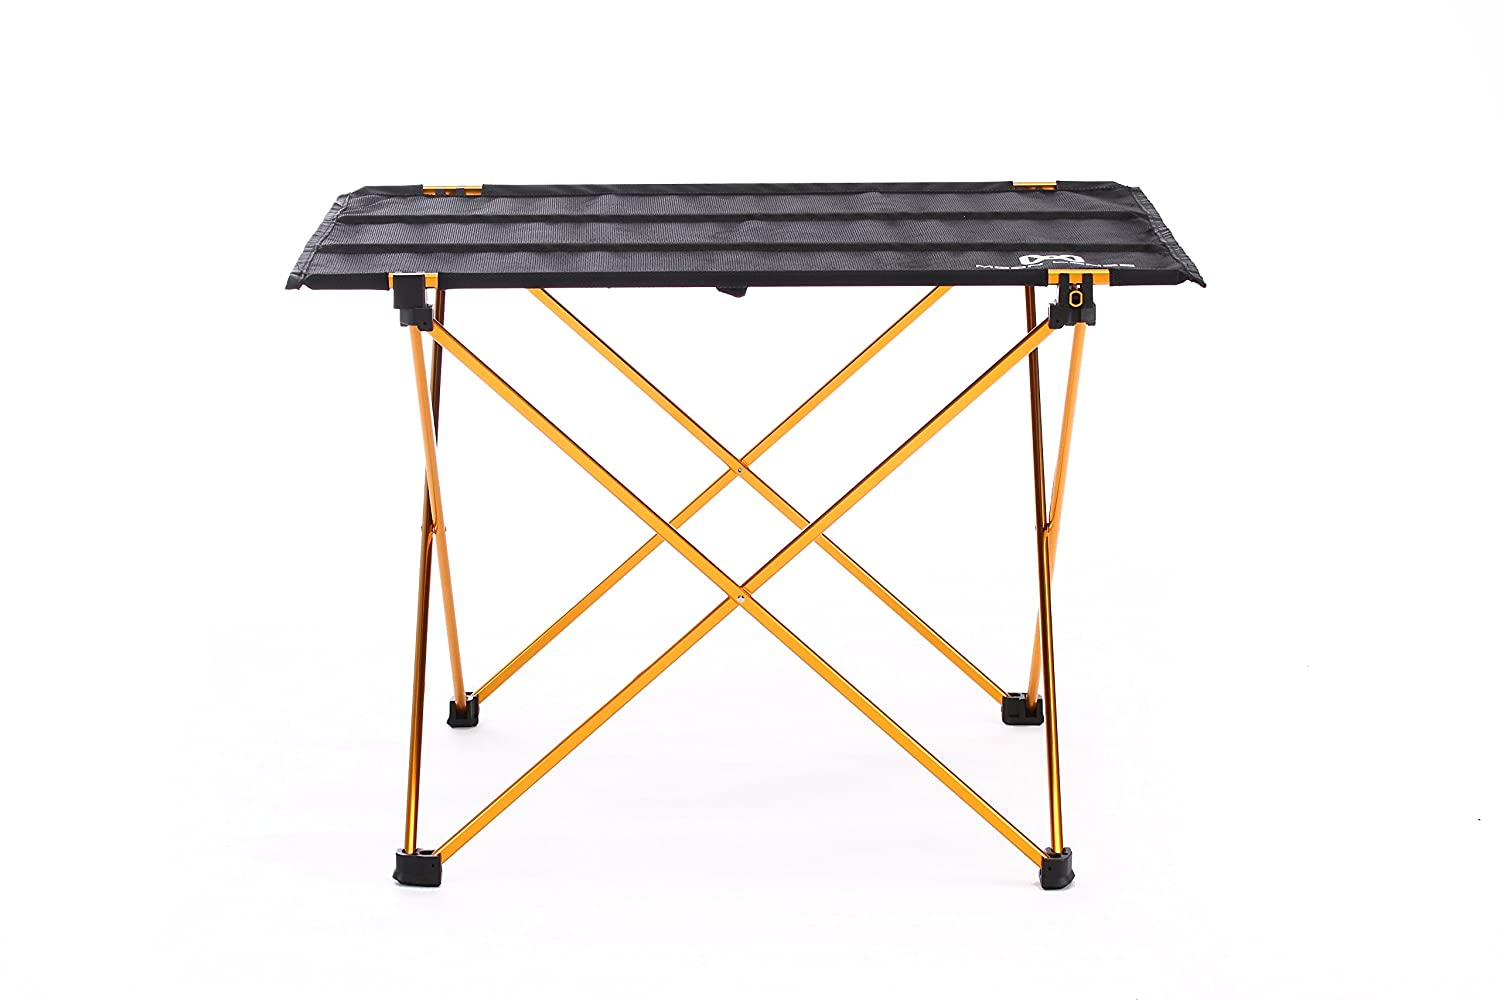 Moon lence ultralight folding camping picnic roll up table with carrying bag ebay - Lightweight camping tables ...